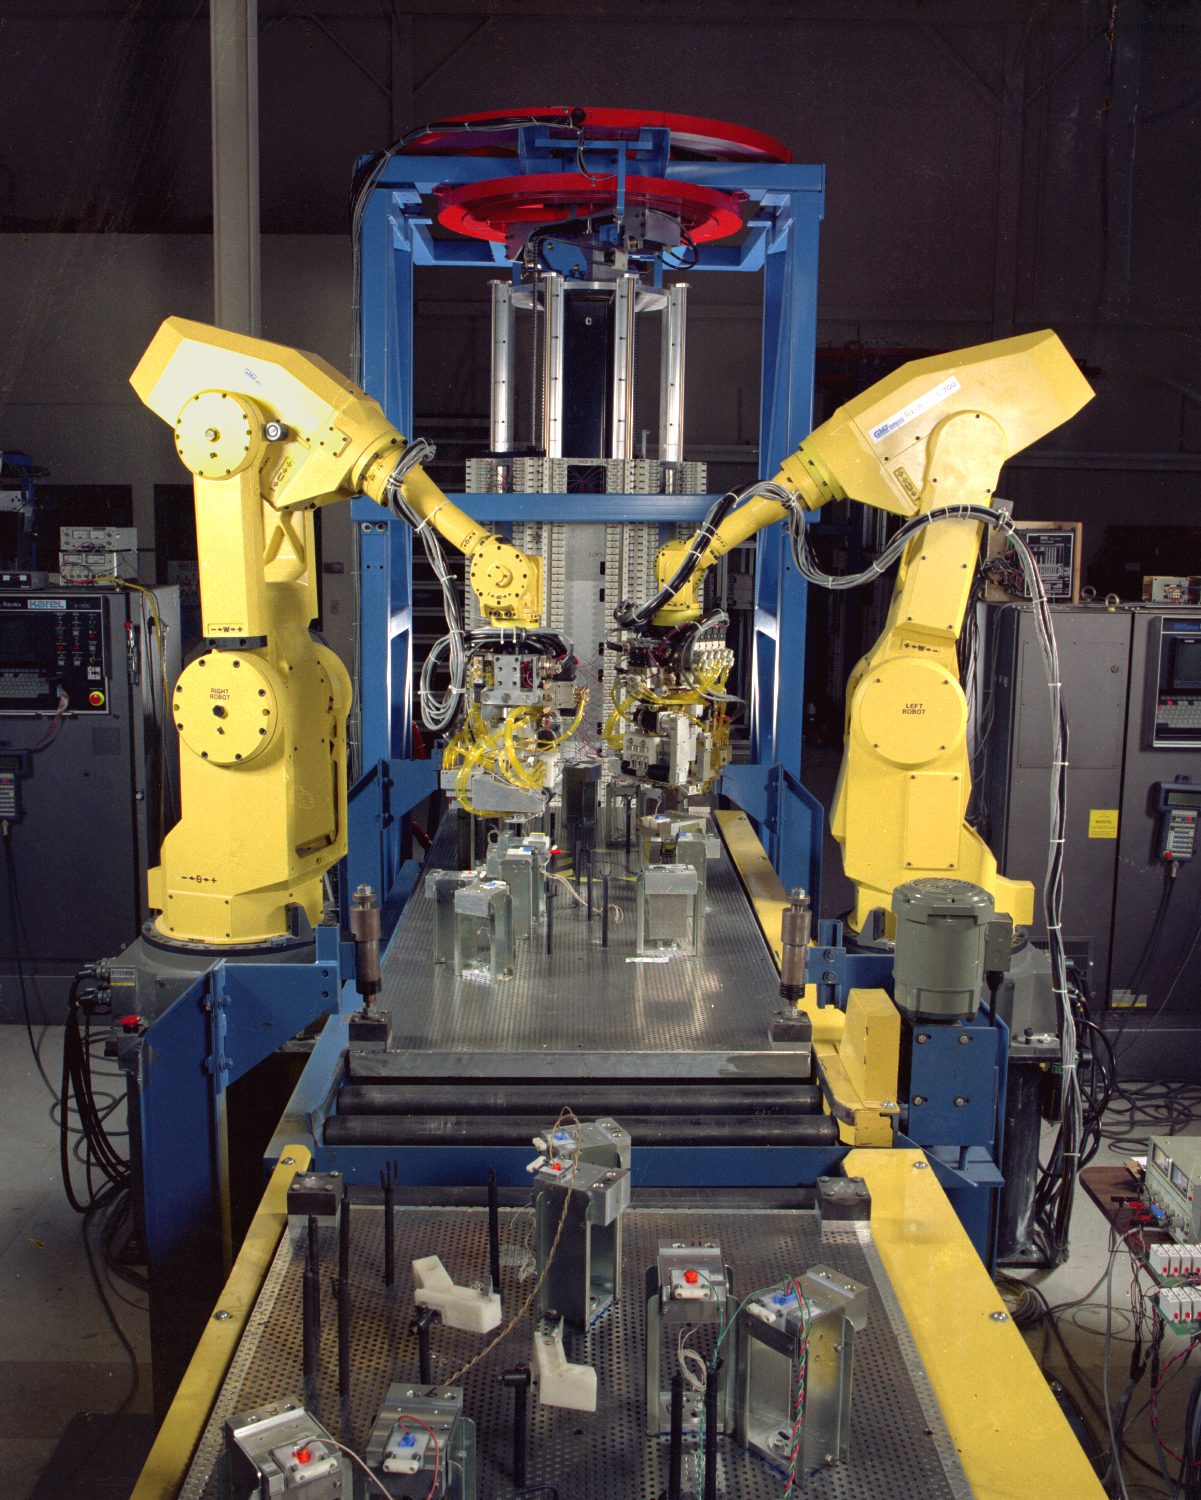 Two yellow robotic arms building components